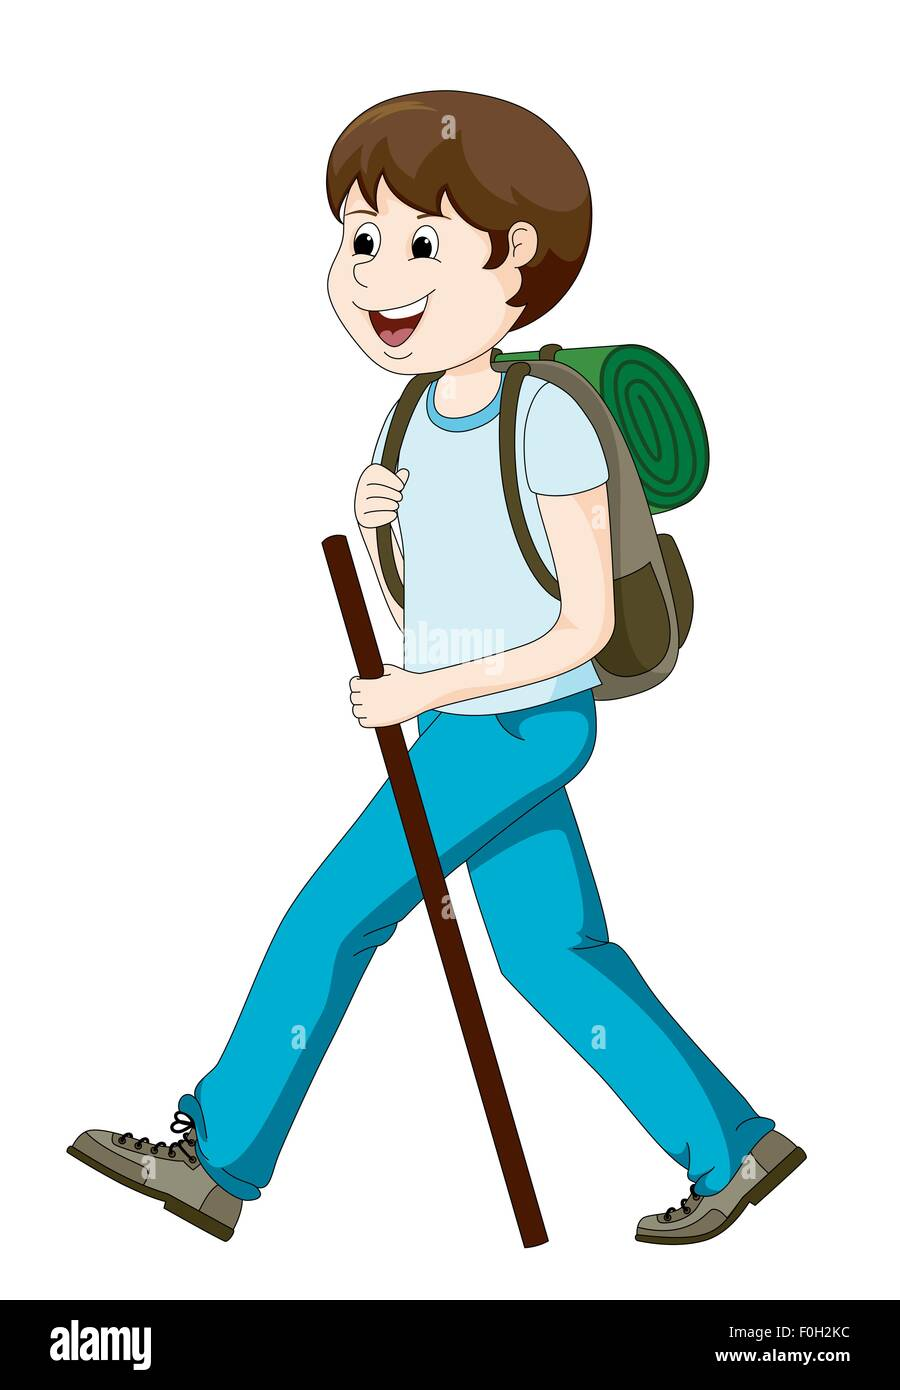 man hiking - Stock Image